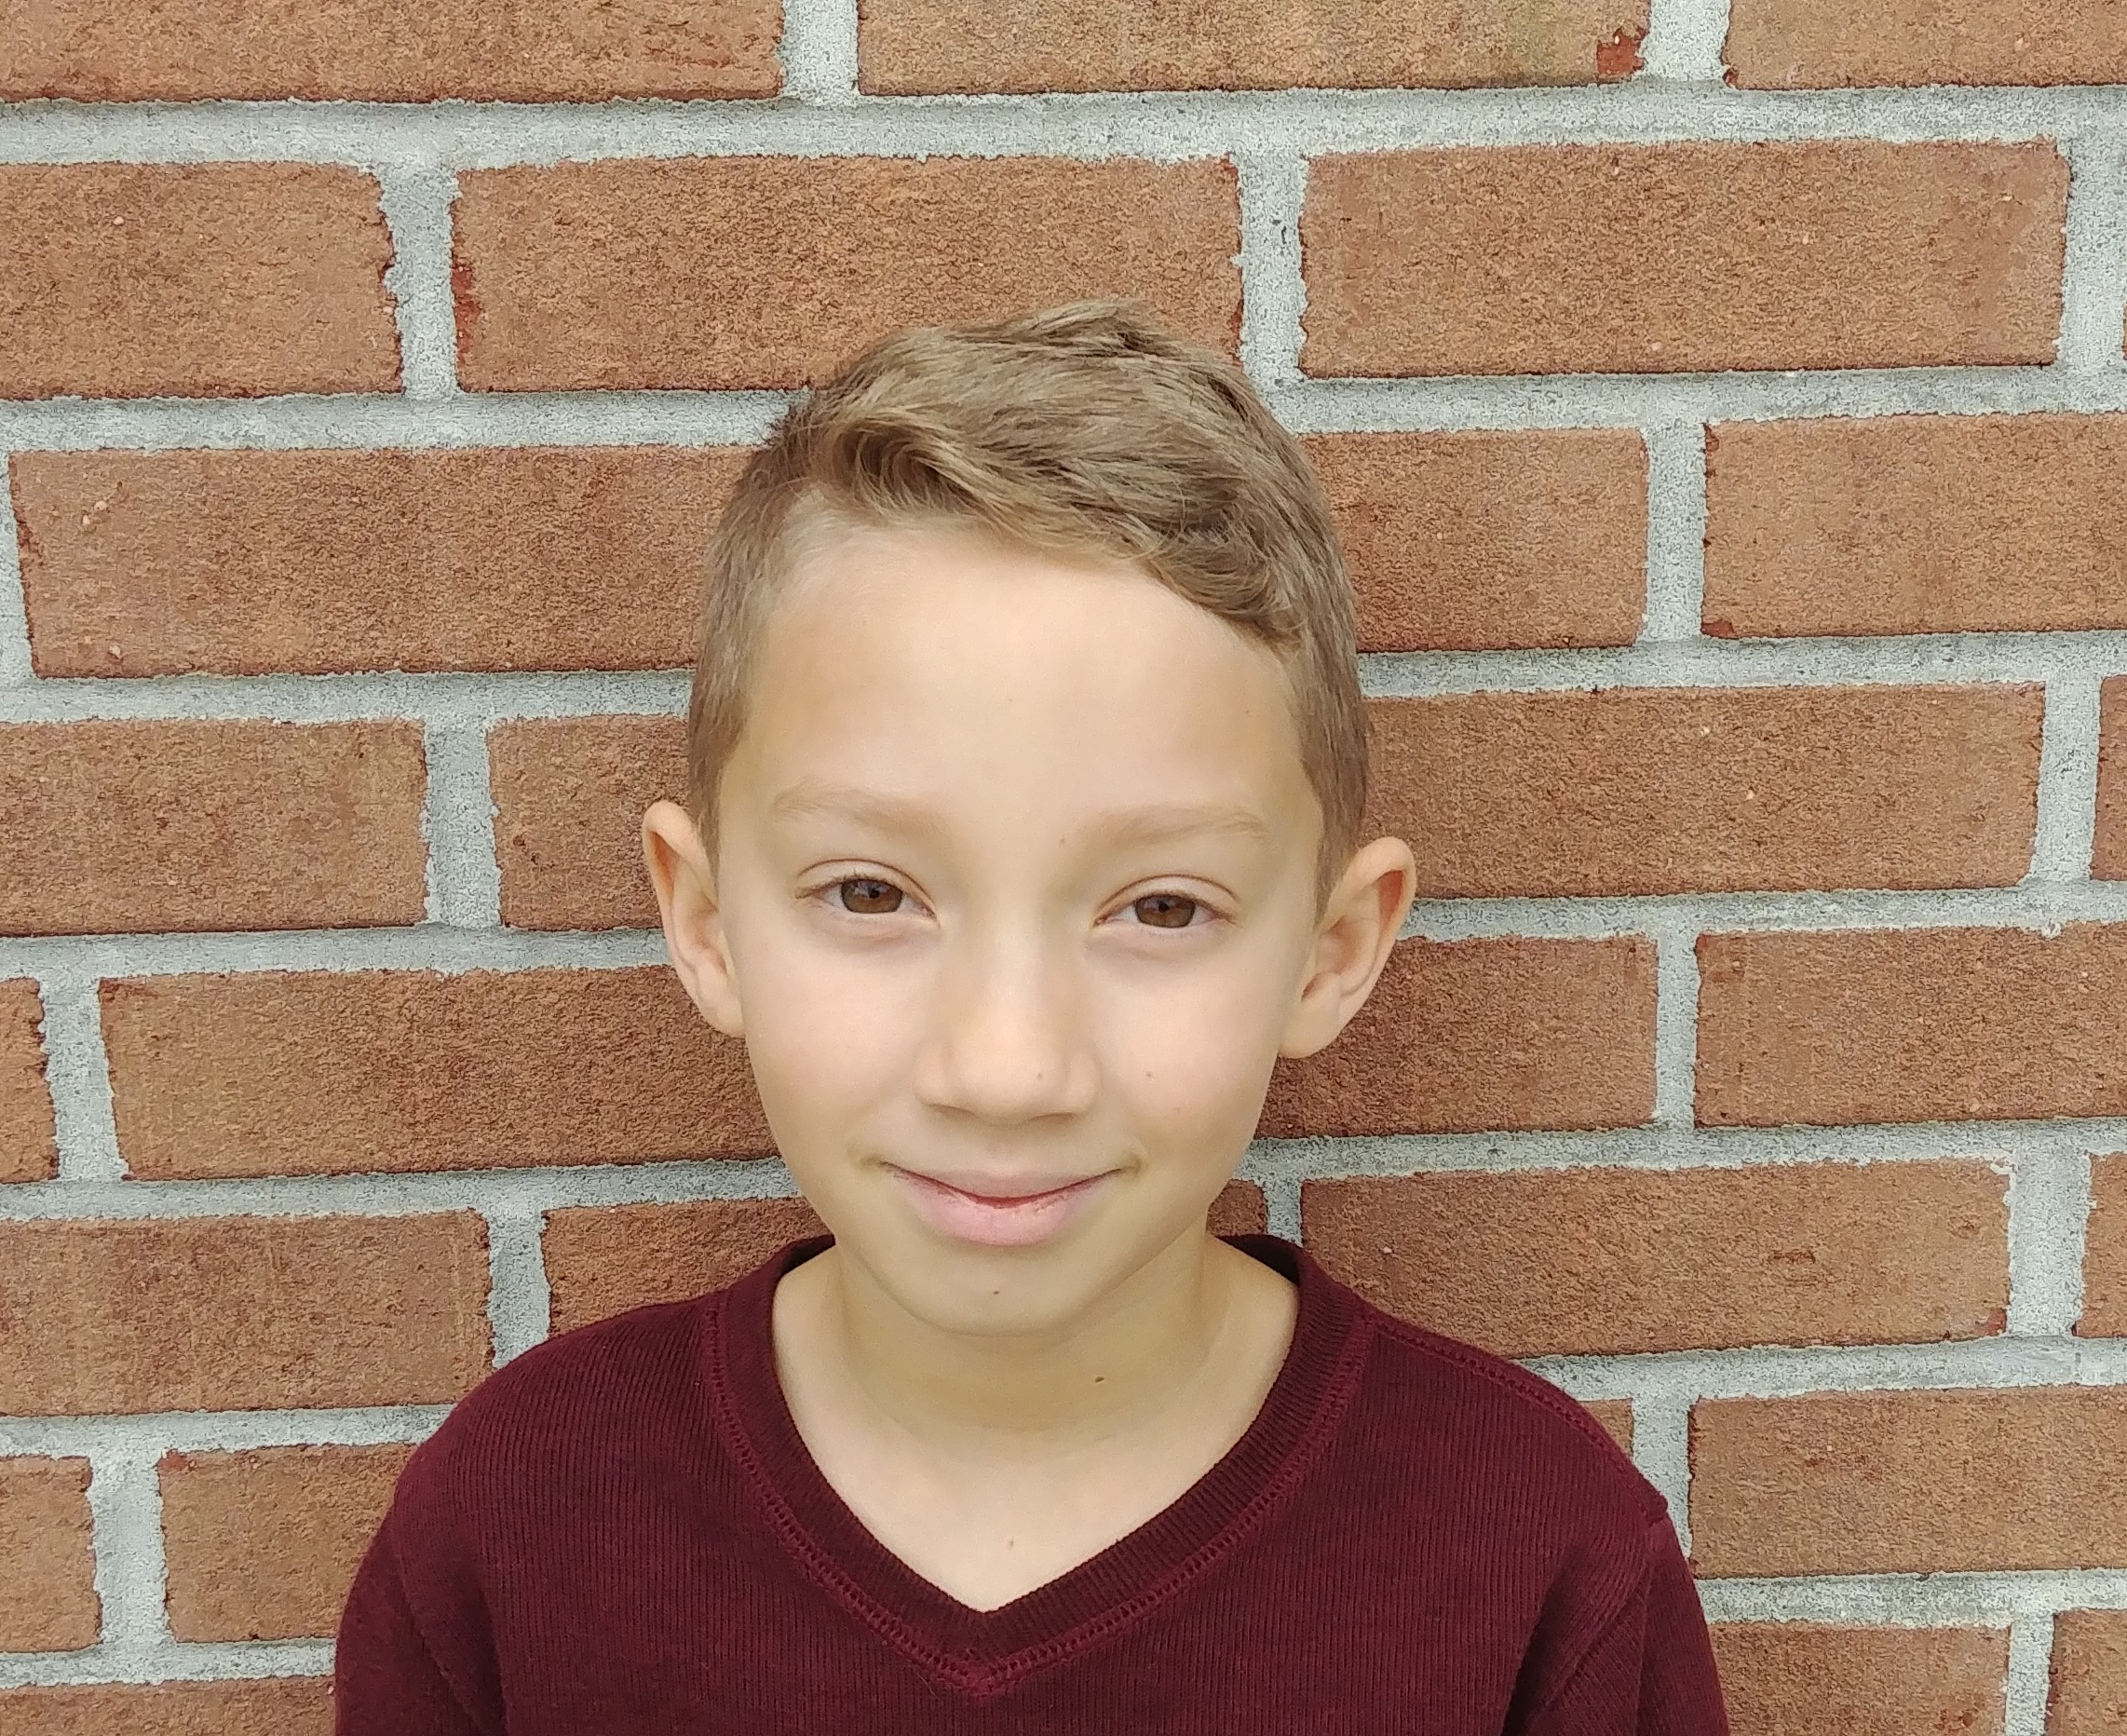 My favorite soup is chicken noodle because I like to have it when I am sick. I like to have it at my grandma's house and Chick-fil-A.  Kai  Age 8